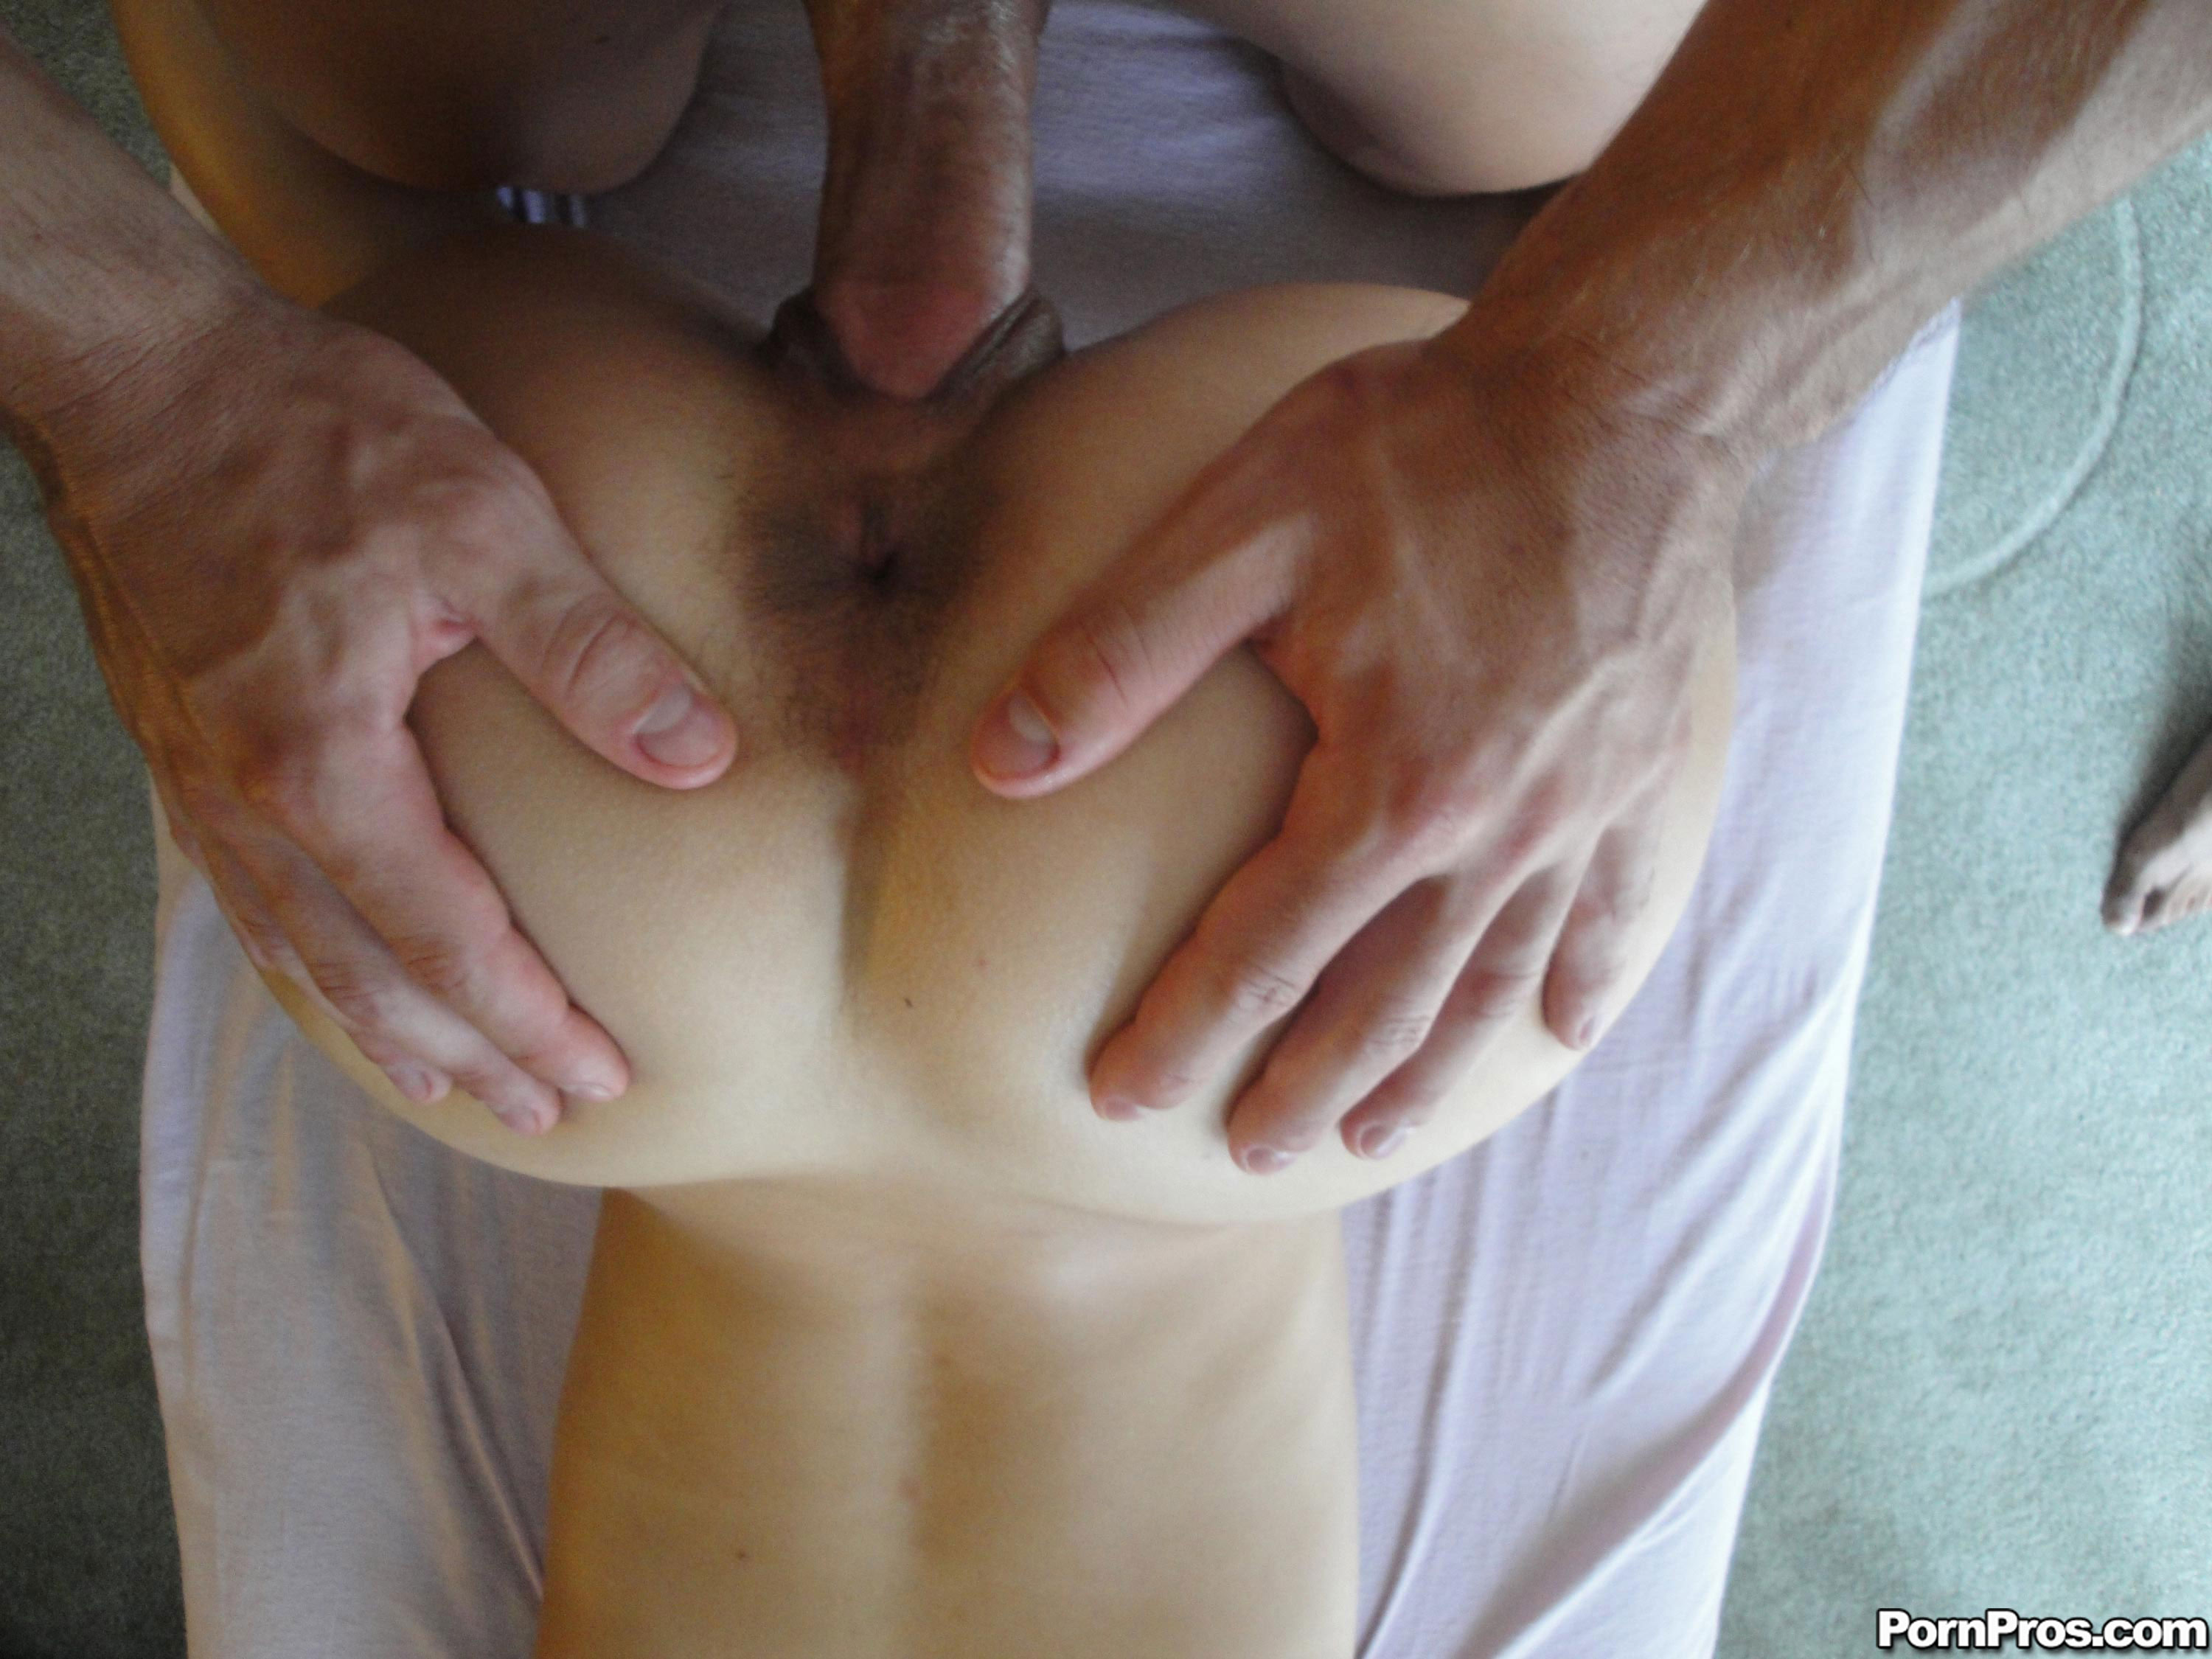 Soft and relaxing handjob for you babe 8